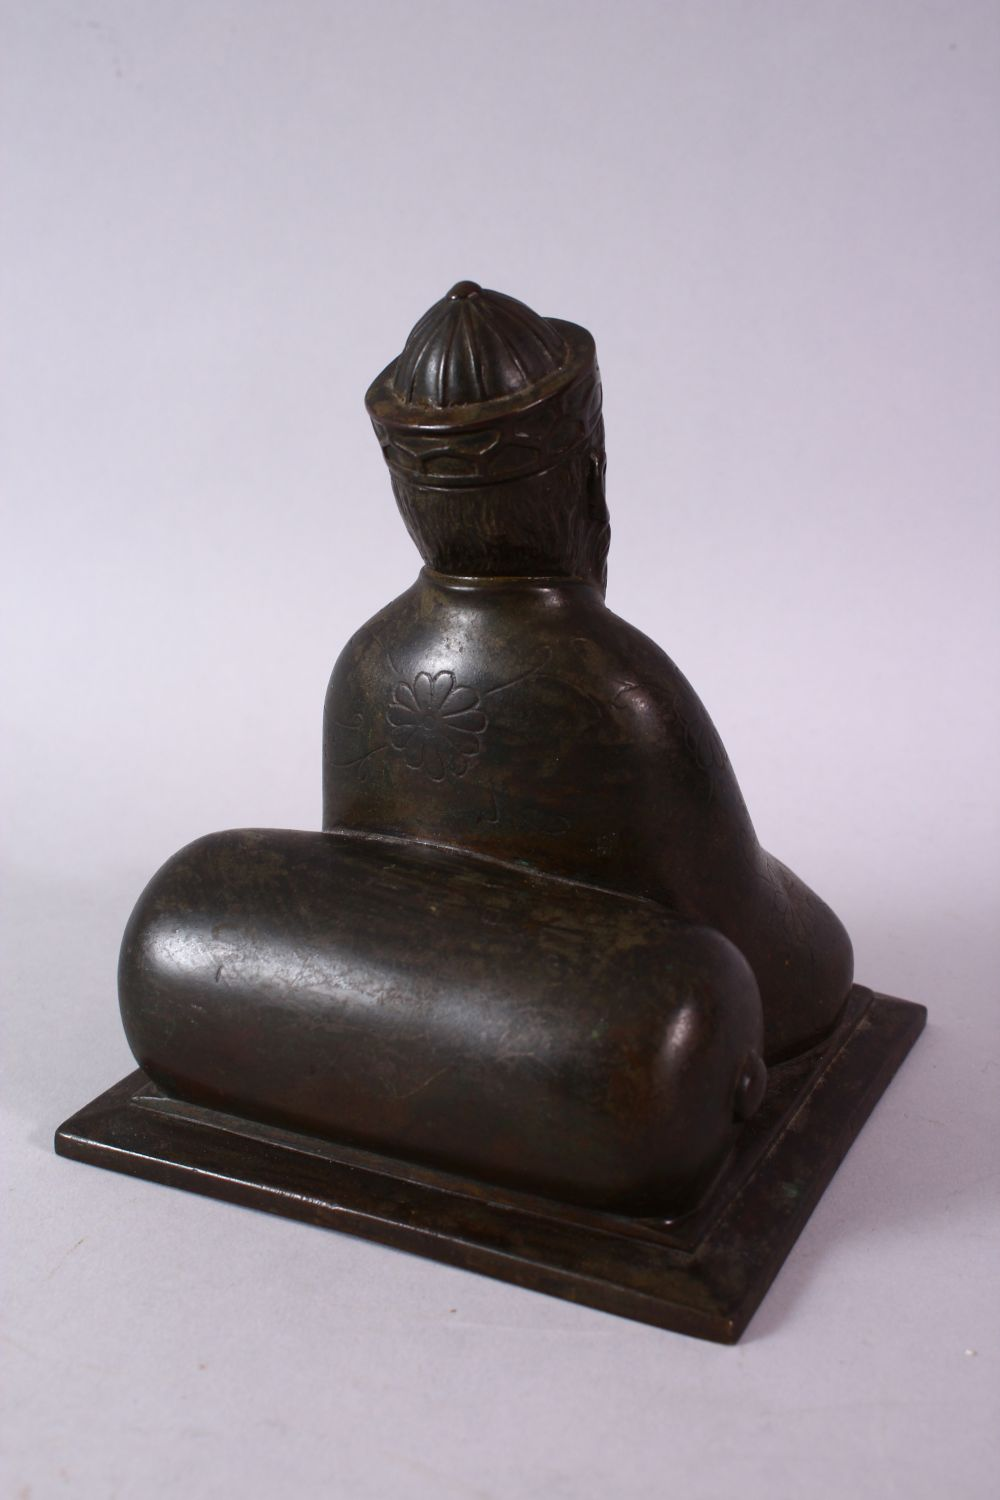 AN 18TH/19TH CENTURY BRONZE SEATED FIGURE OF A SCHOLAR, on a square base, 17cm high. - Image 4 of 6